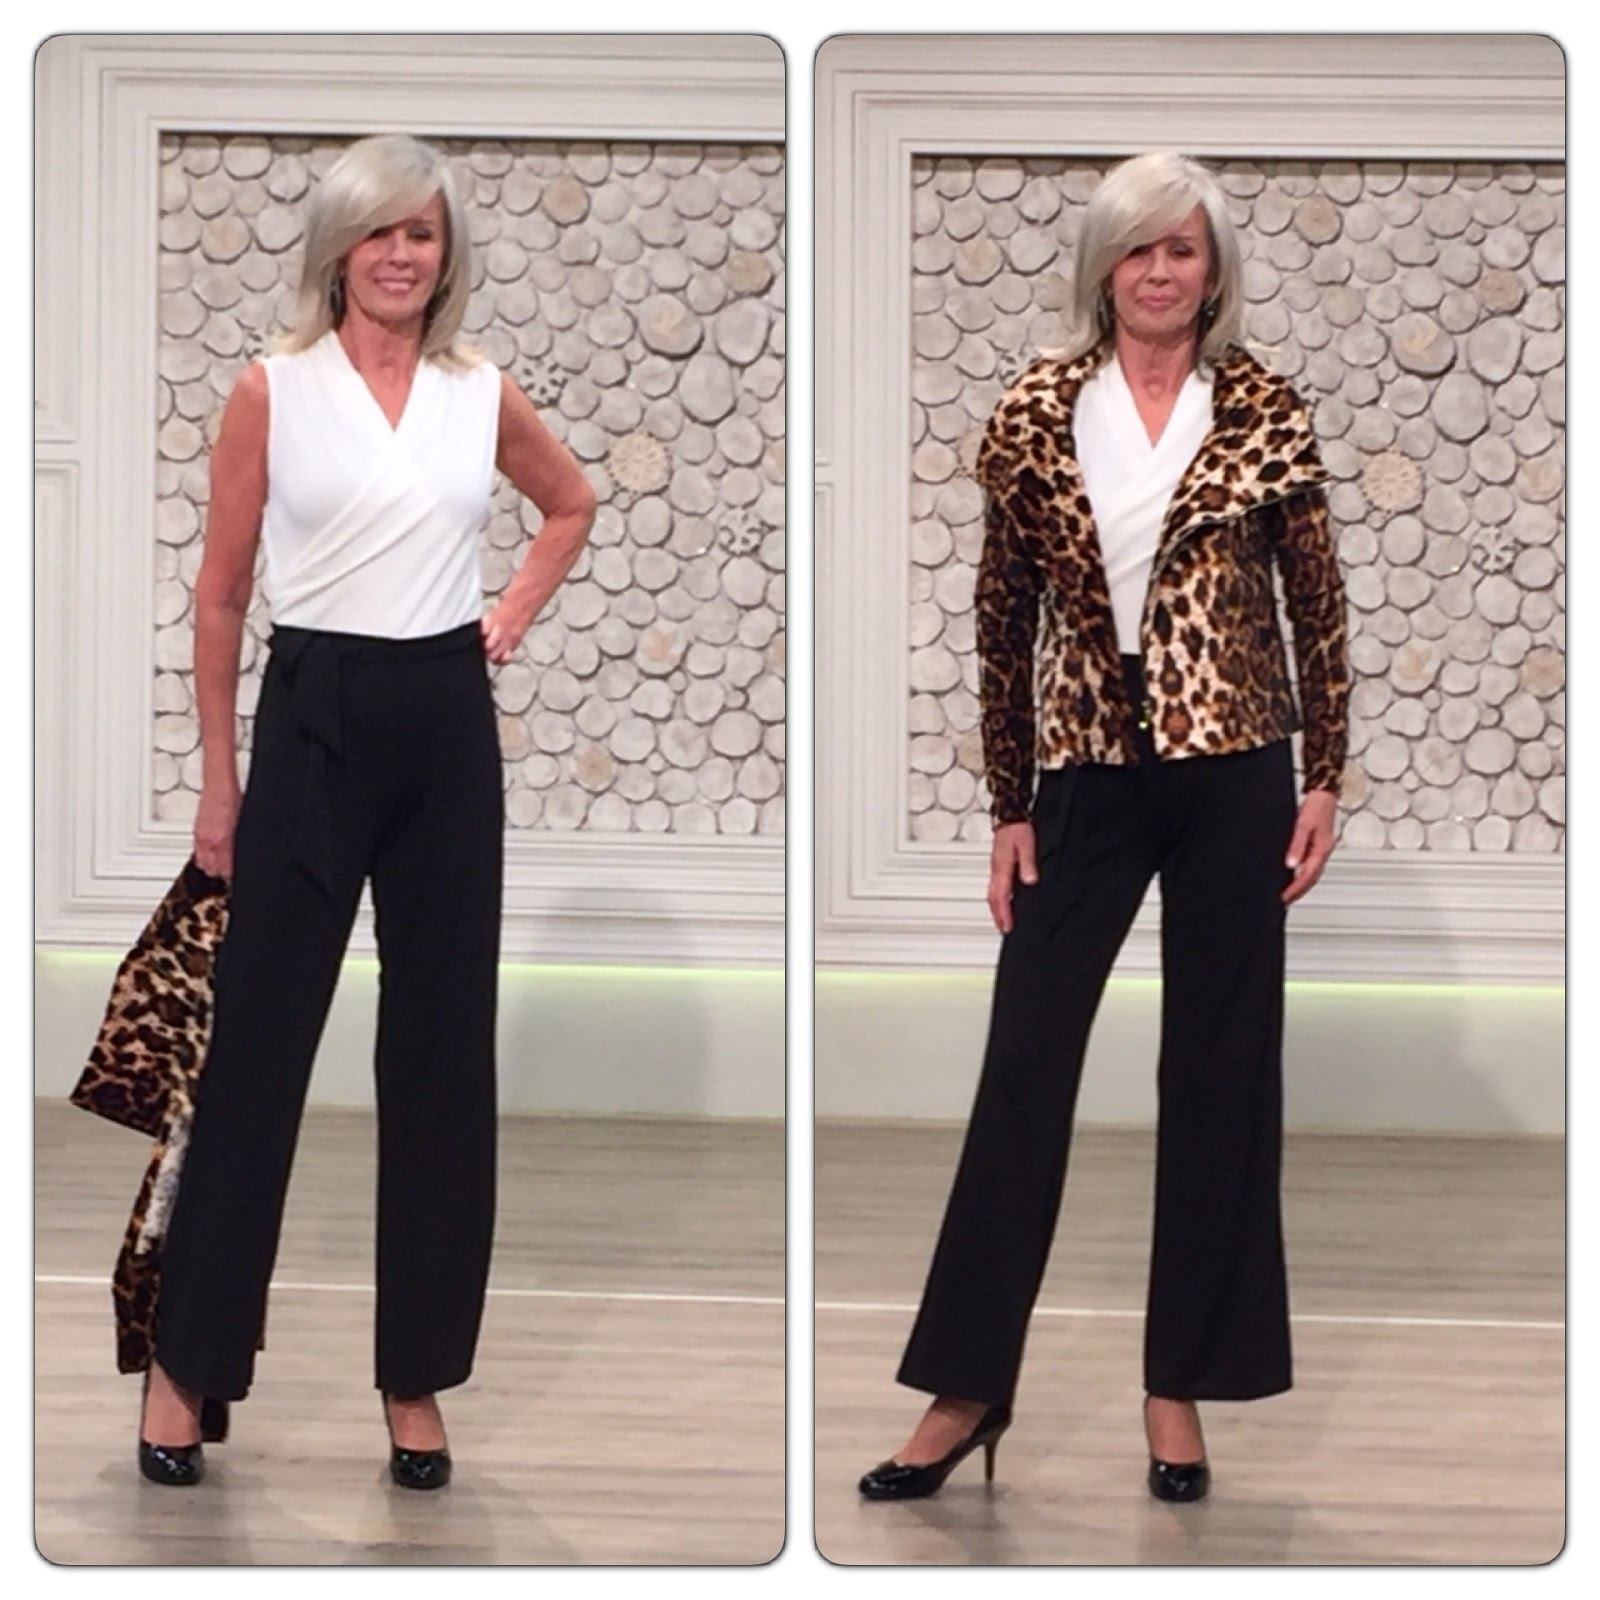 Nv nick verreosemiere on qvc uk lots of photos nick verreos model in nv nick verreos faux leather and jersey knit top and tribal print knit jersey pants nv nick verreos premiere day on qvc uk ccuart Gallery